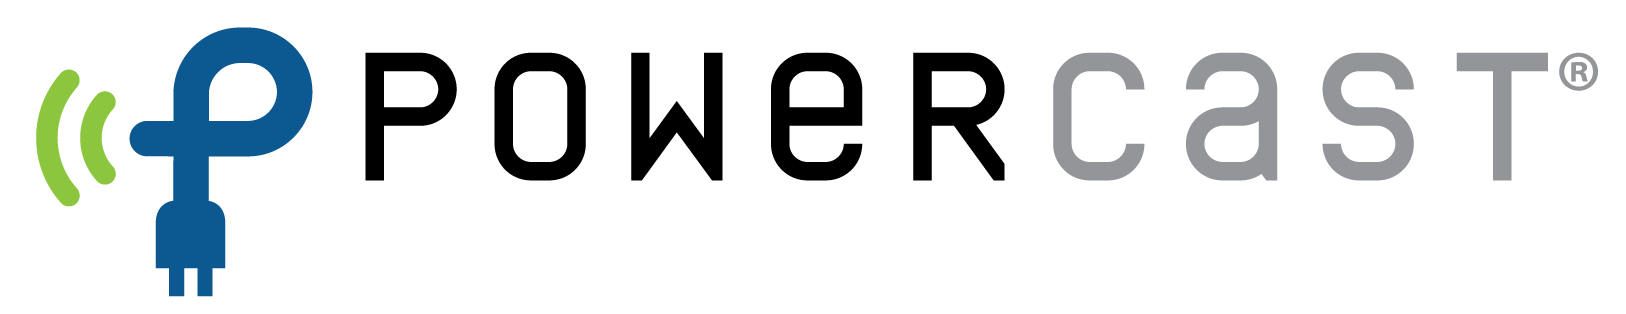 Powercast Logo cropped for document headings-01-01